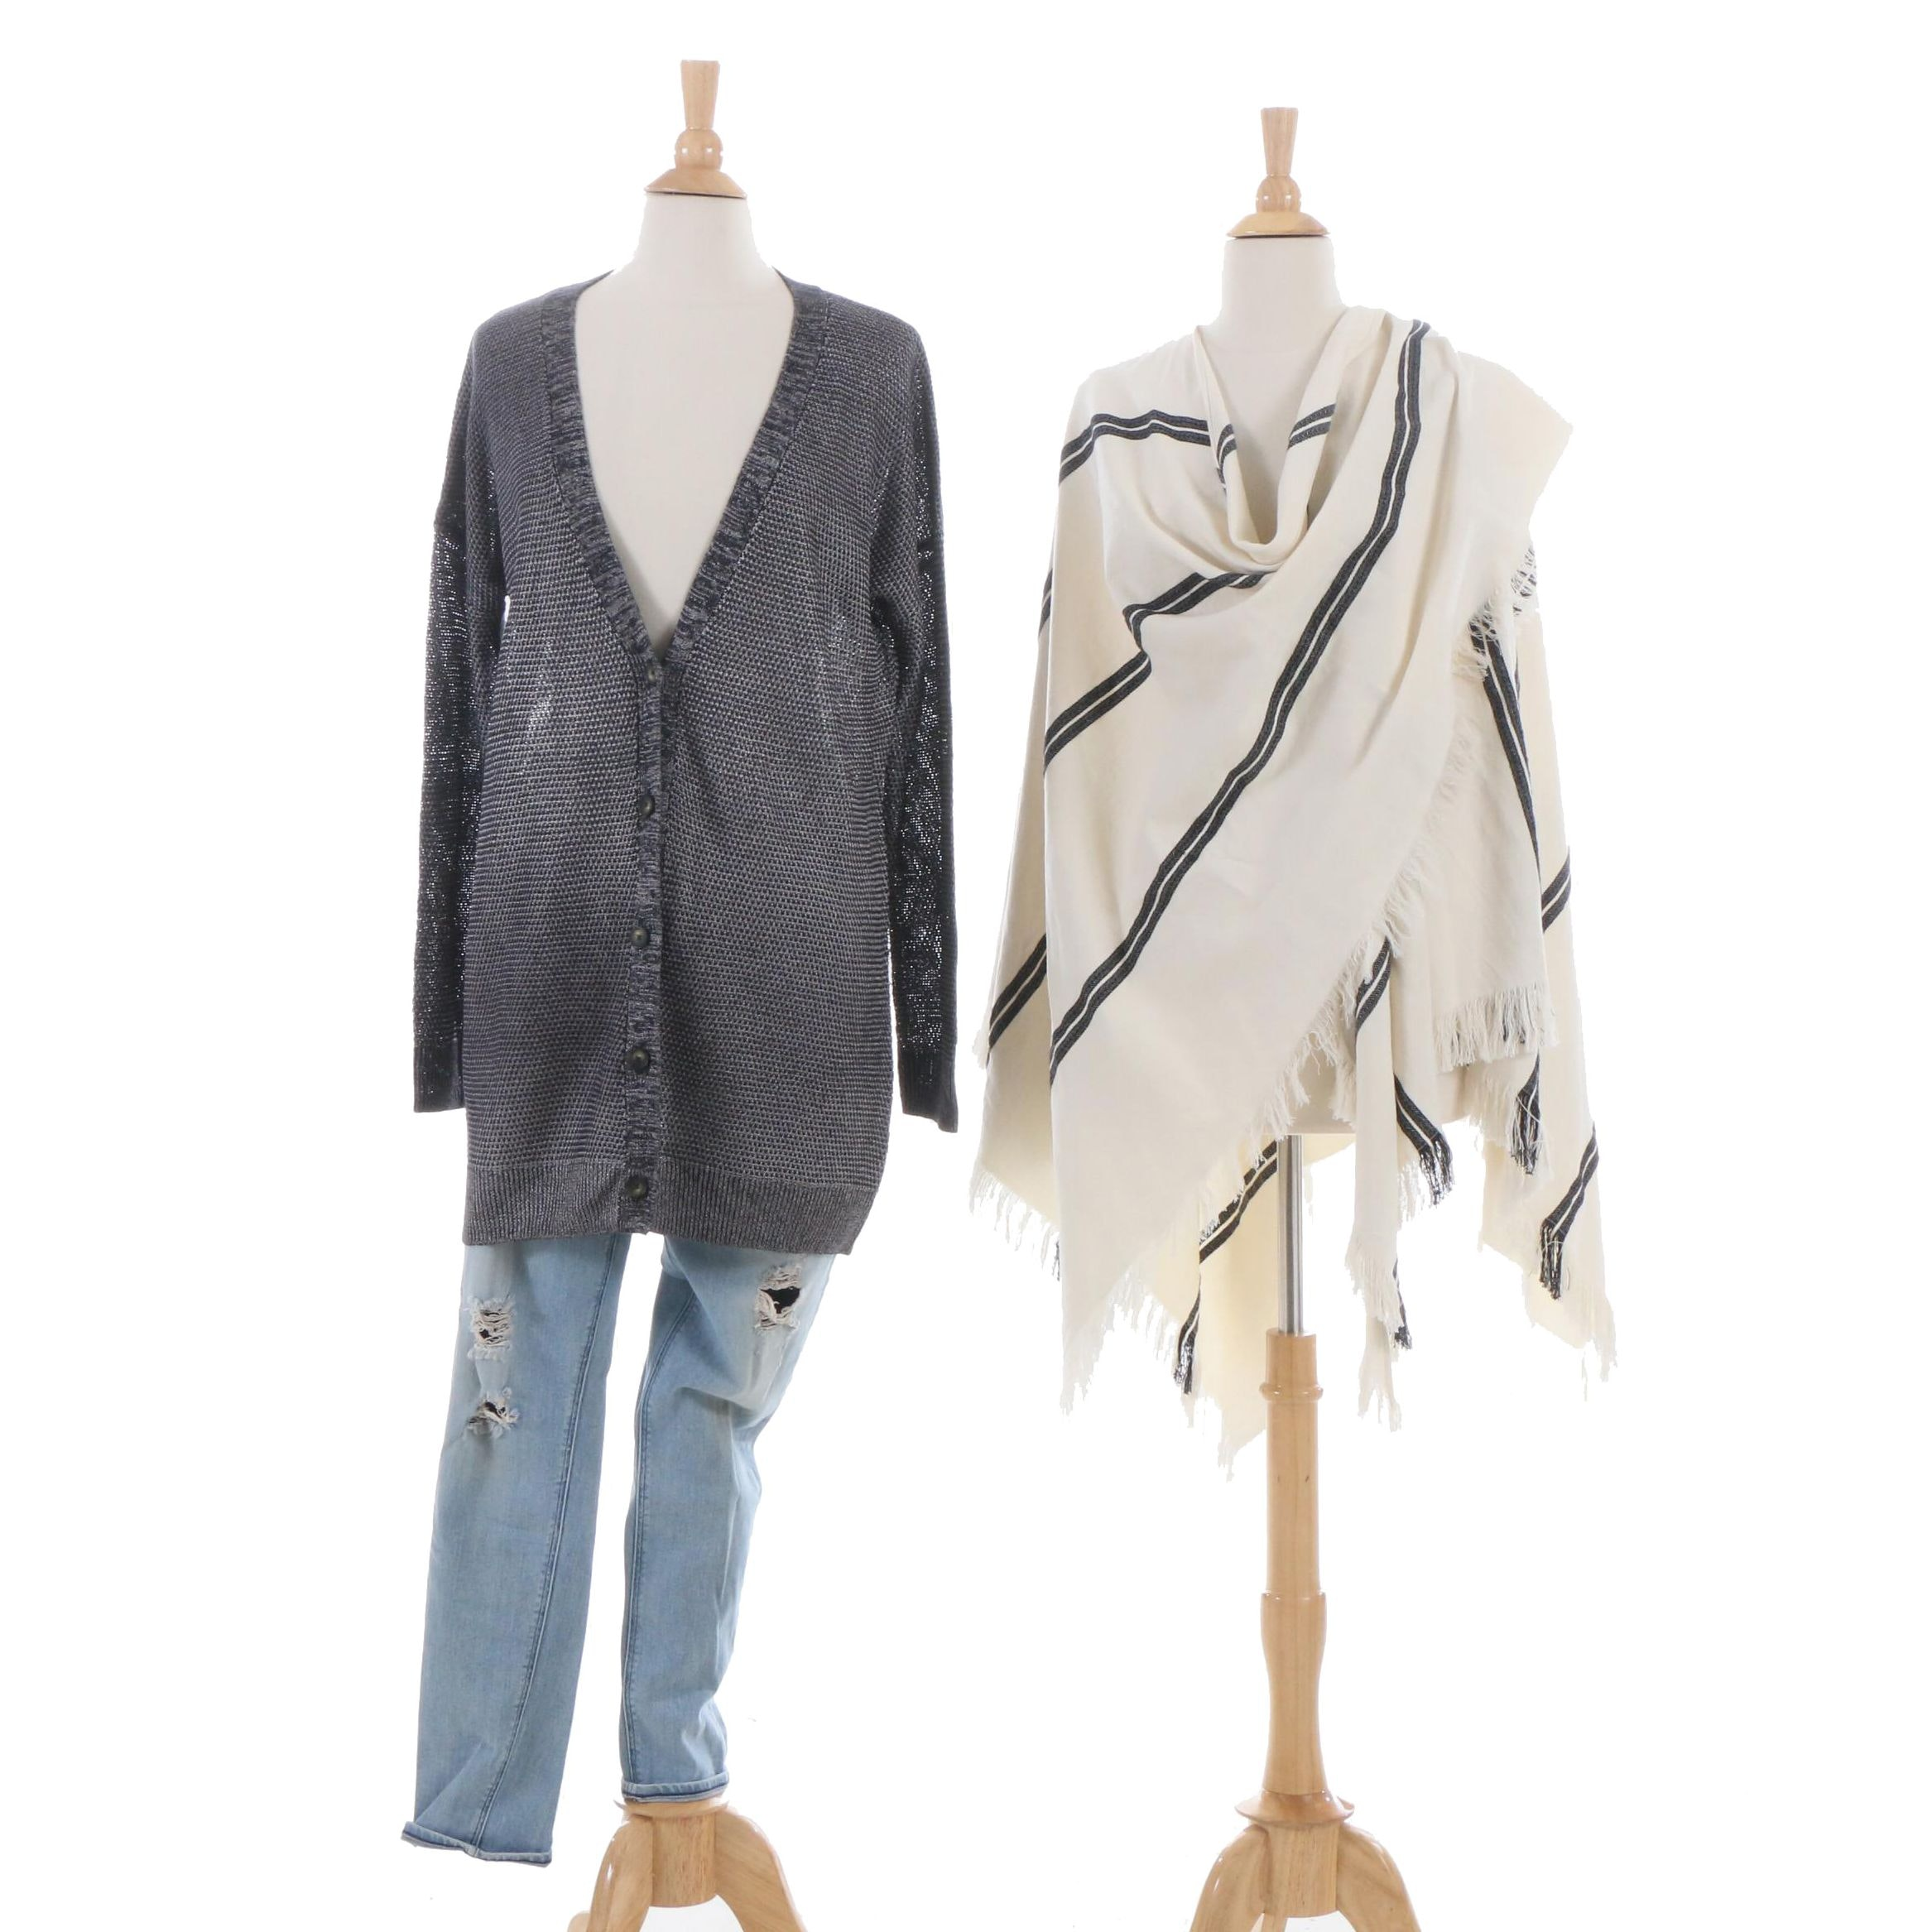 Vince Knit Cardigan, Eileen Fisher Wrap and McGuire Distressed Jeans